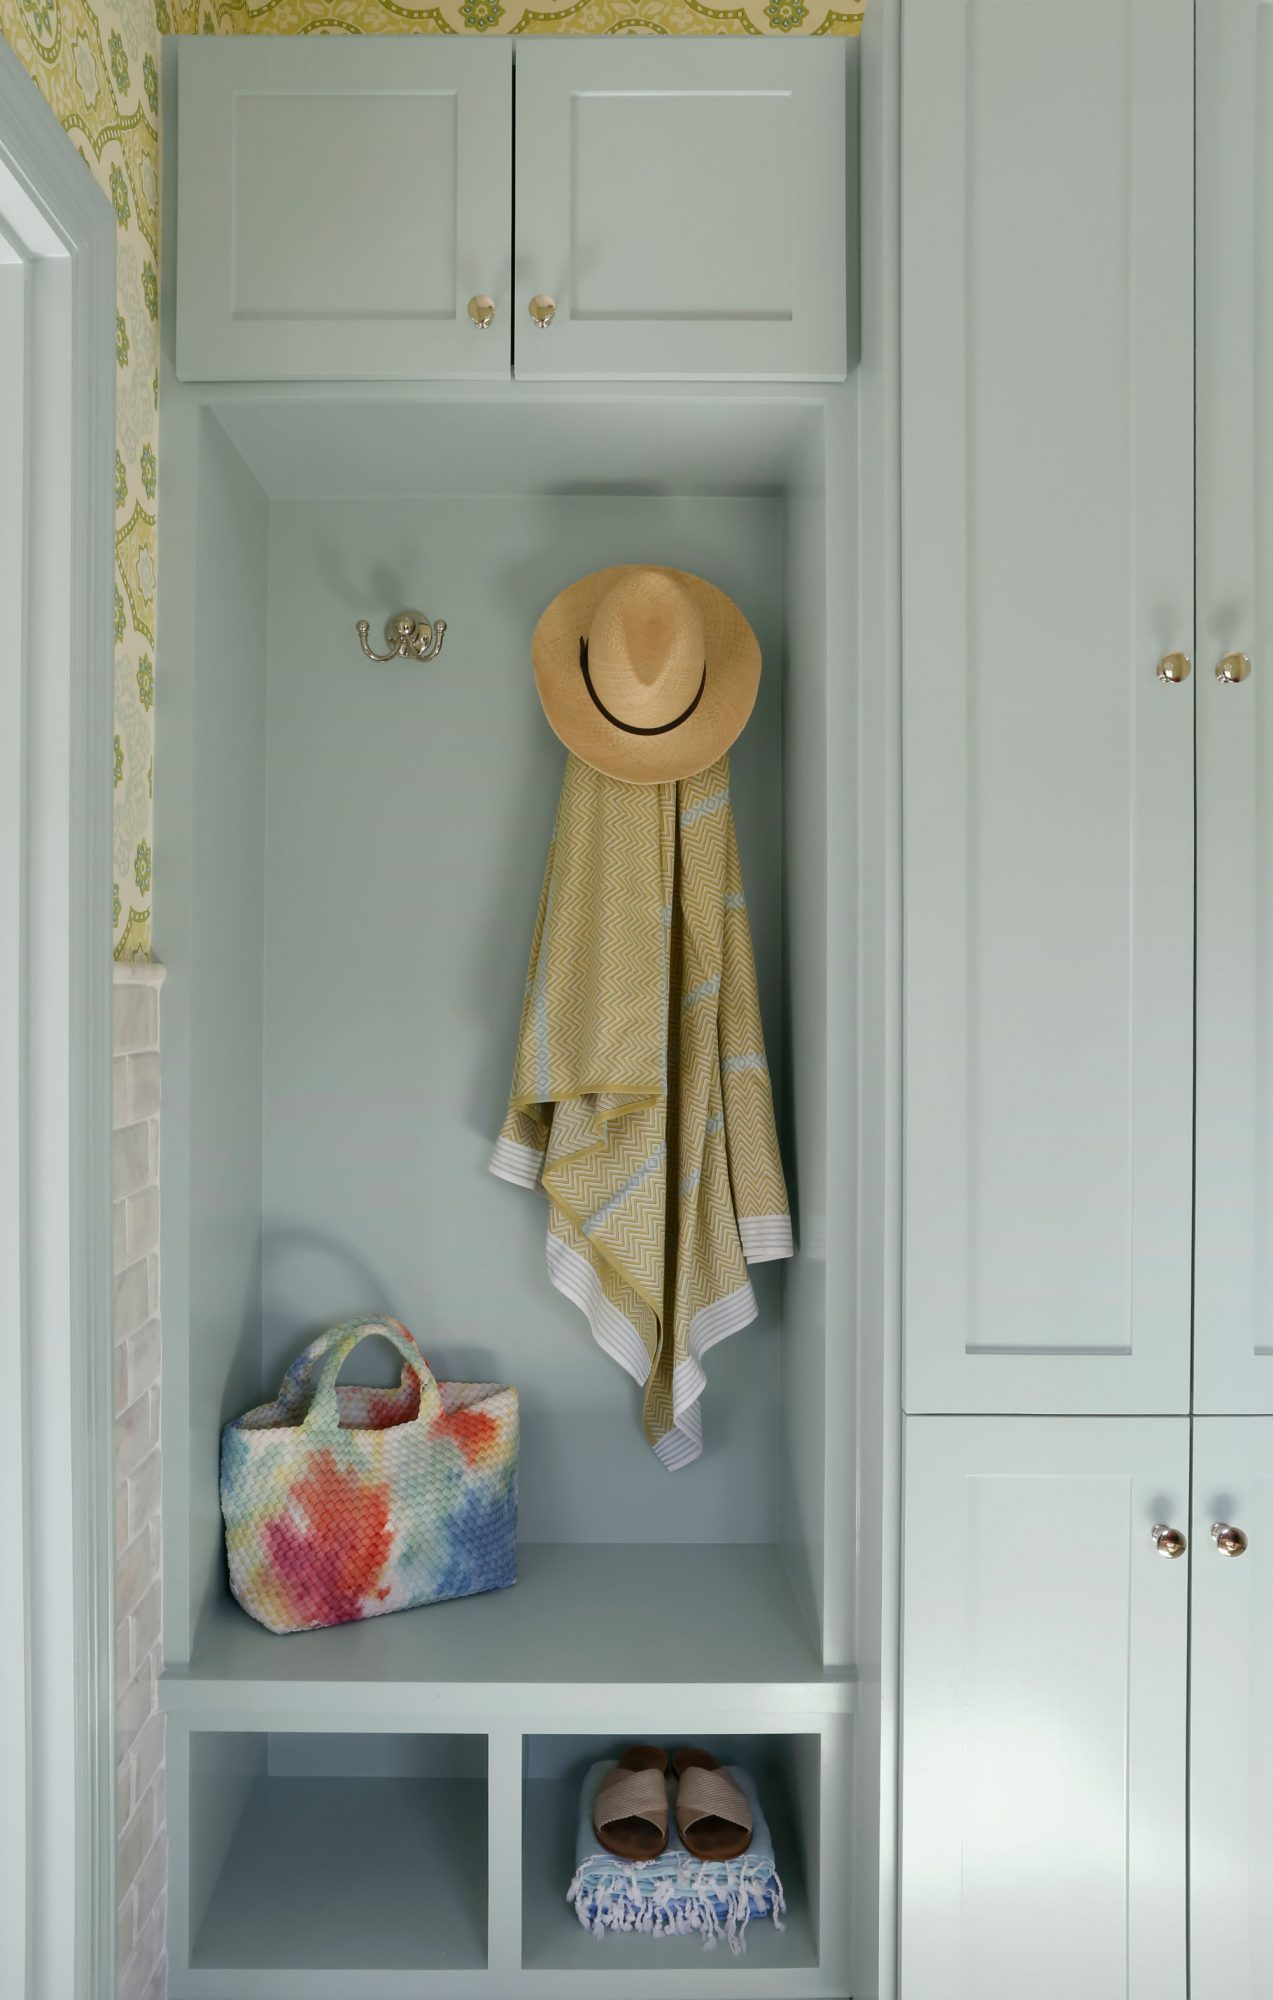 """Home entryway where a sunhat and shawl hang on a gold hook. Wall and cabinets are pained in Benjamin Moore's """"Woodlawn Blue"""" shade."""